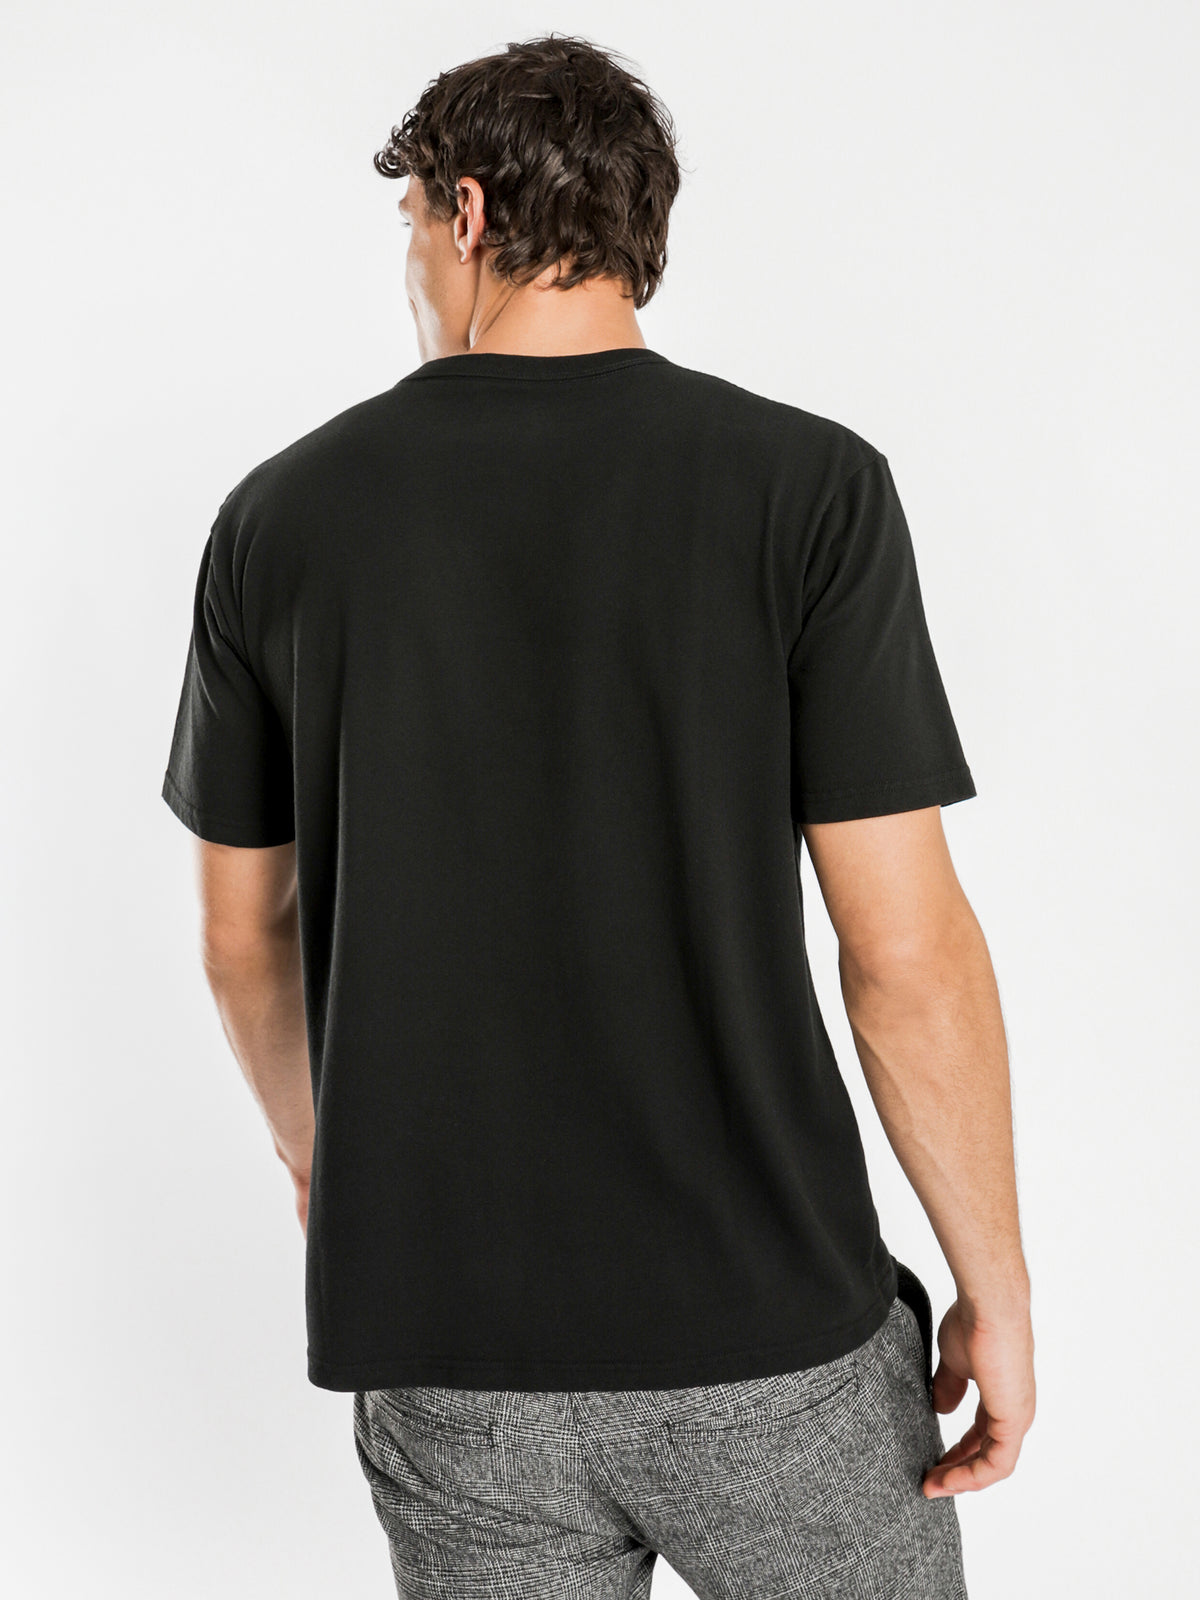 Heavyweight Short Sleeve Crew T-Shirt in Black